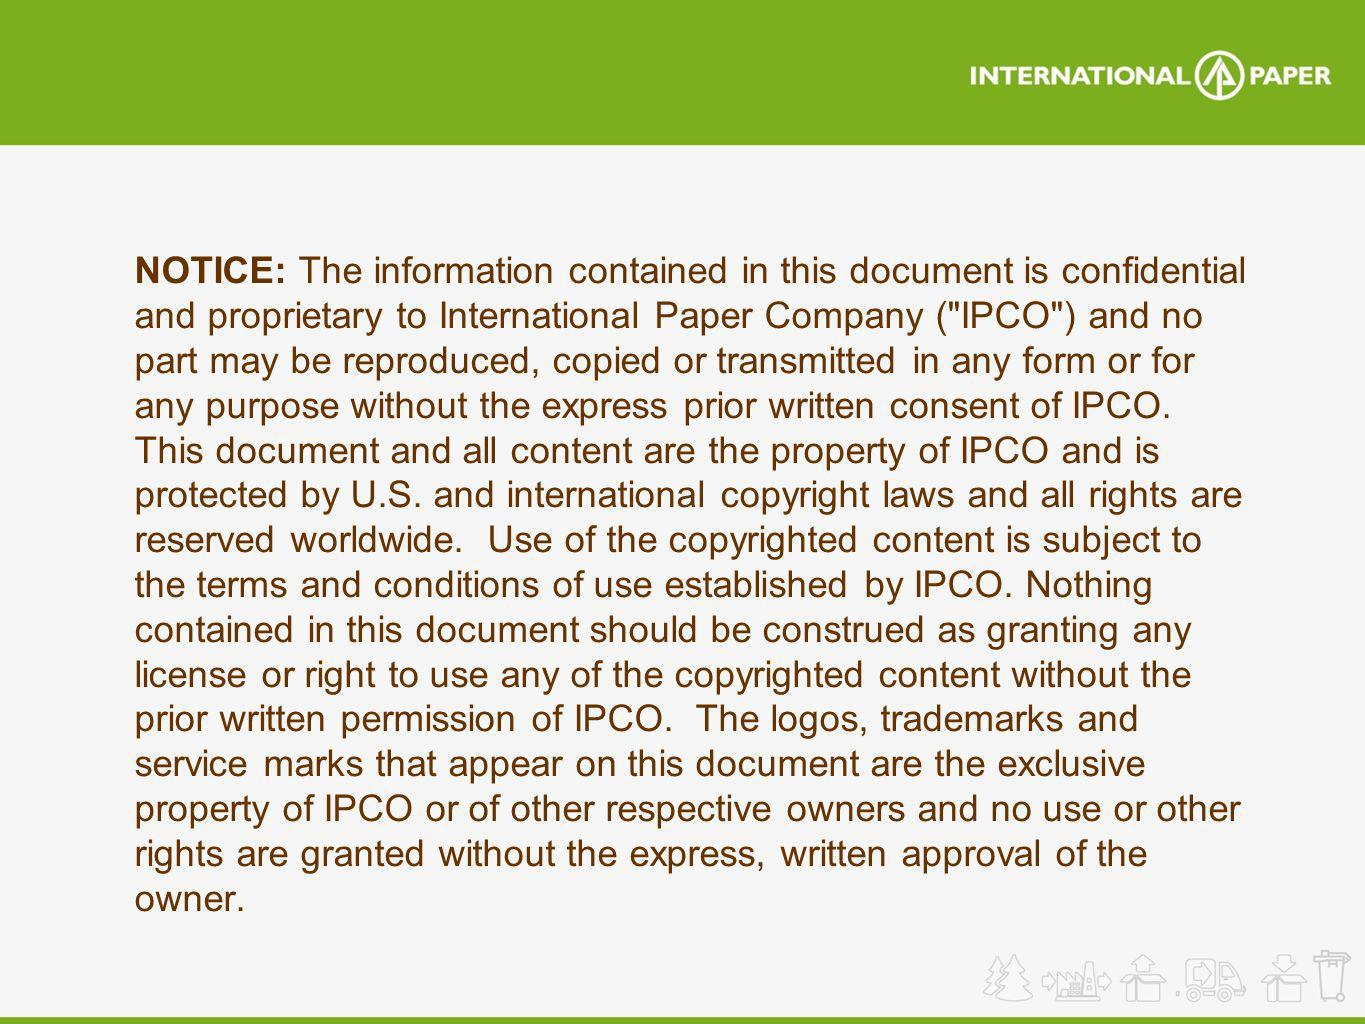 NOTICE: The information contained in this document is confidential and proprietary to International Paper Company ( IPCO ) and no part may be reproduced, copied or transmitted in any form or for any purpose without the express prior written consent of IPCO.